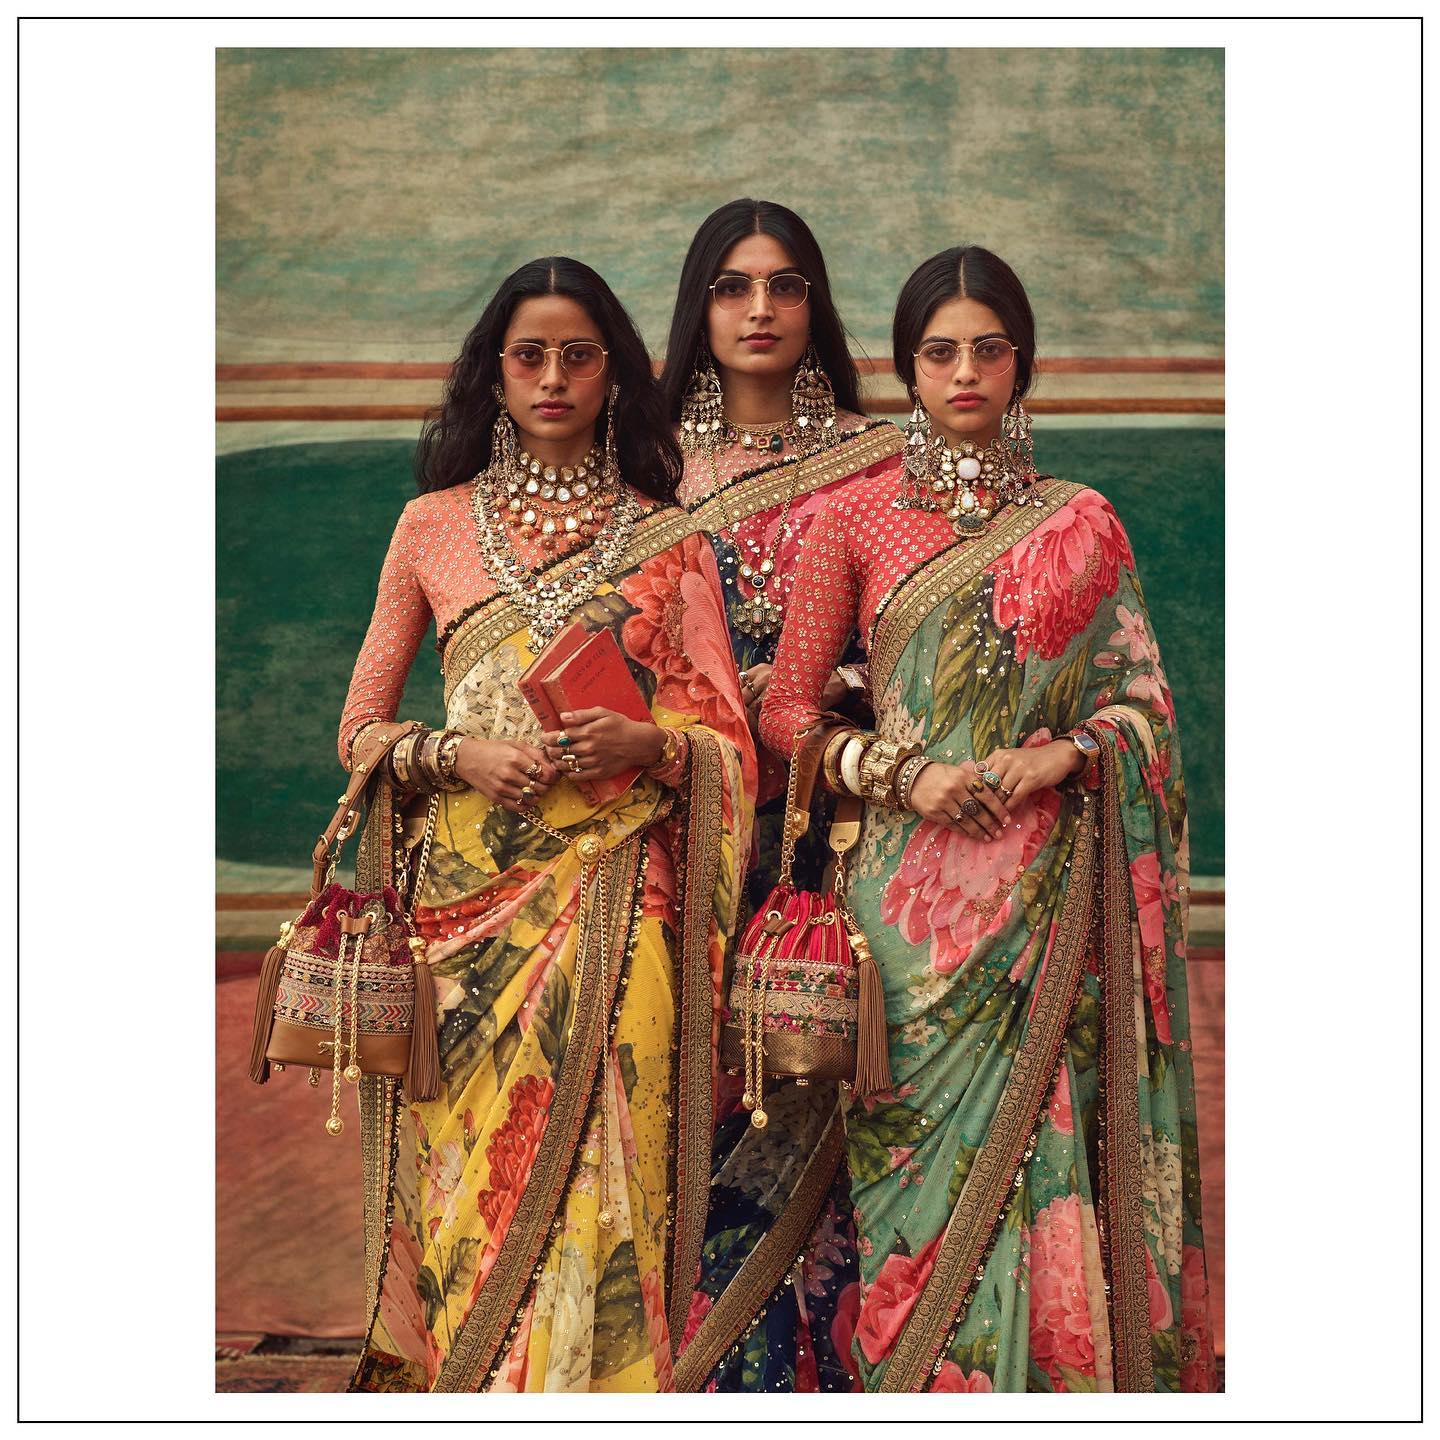 Sabyasachi floral saree. The Sabyasachi 2021 Collection.  Womenswear jewellery Sabyasachi jewelry and accessories Sabyasachi accessories..  For all product related queries please email at customerservice@sabyasachi.com or contact retail stores directly. 2021-09-15